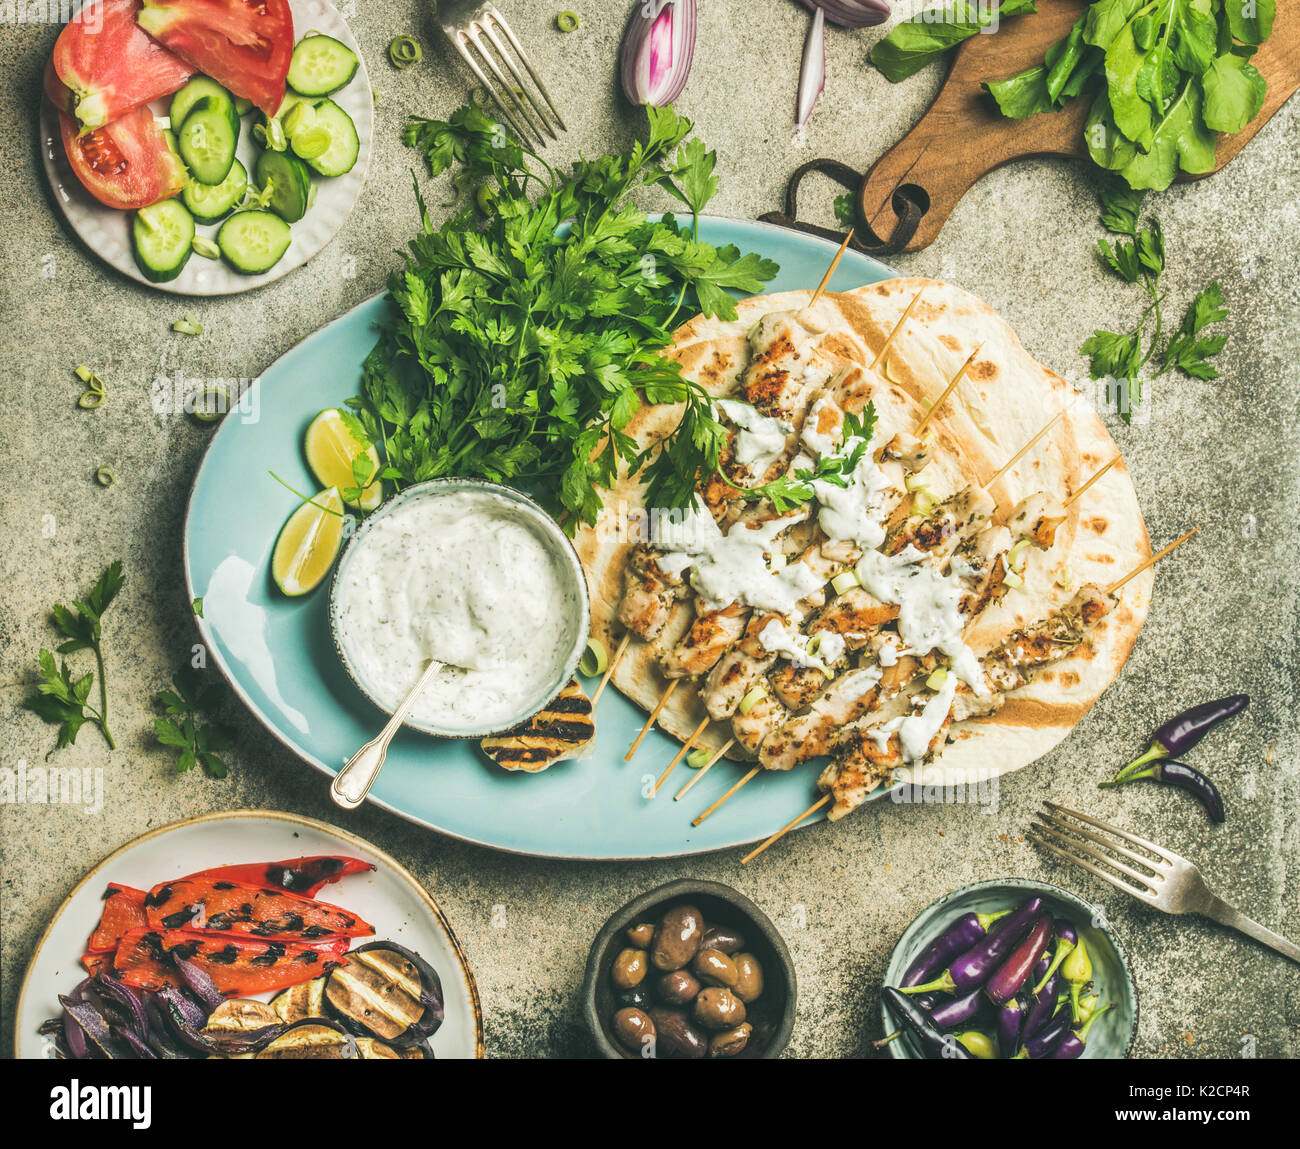 Summer barbecue party dinner set with grilled chiken and vegetables - Stock Image